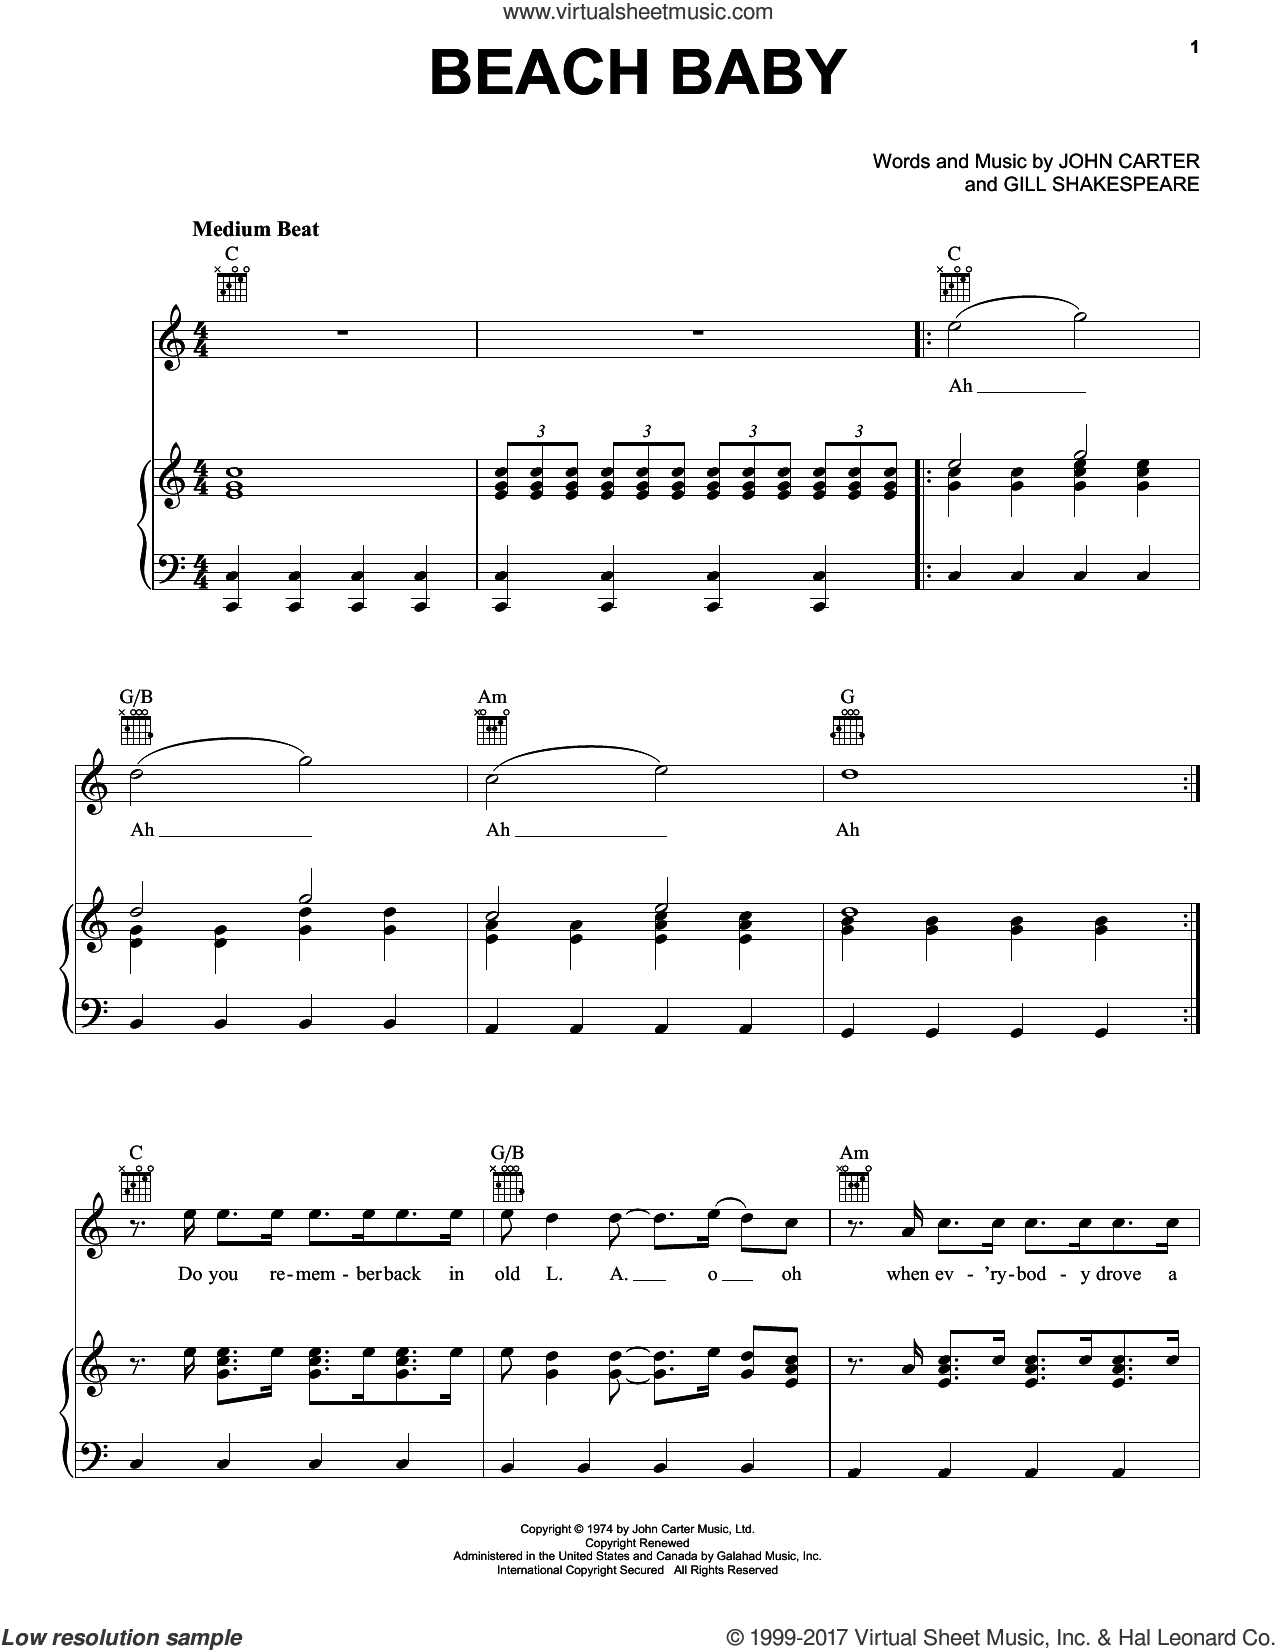 Beach Baby sheet music for voice, piano or guitar by The First Class, Gill Shakespeare and John Carter, intermediate skill level